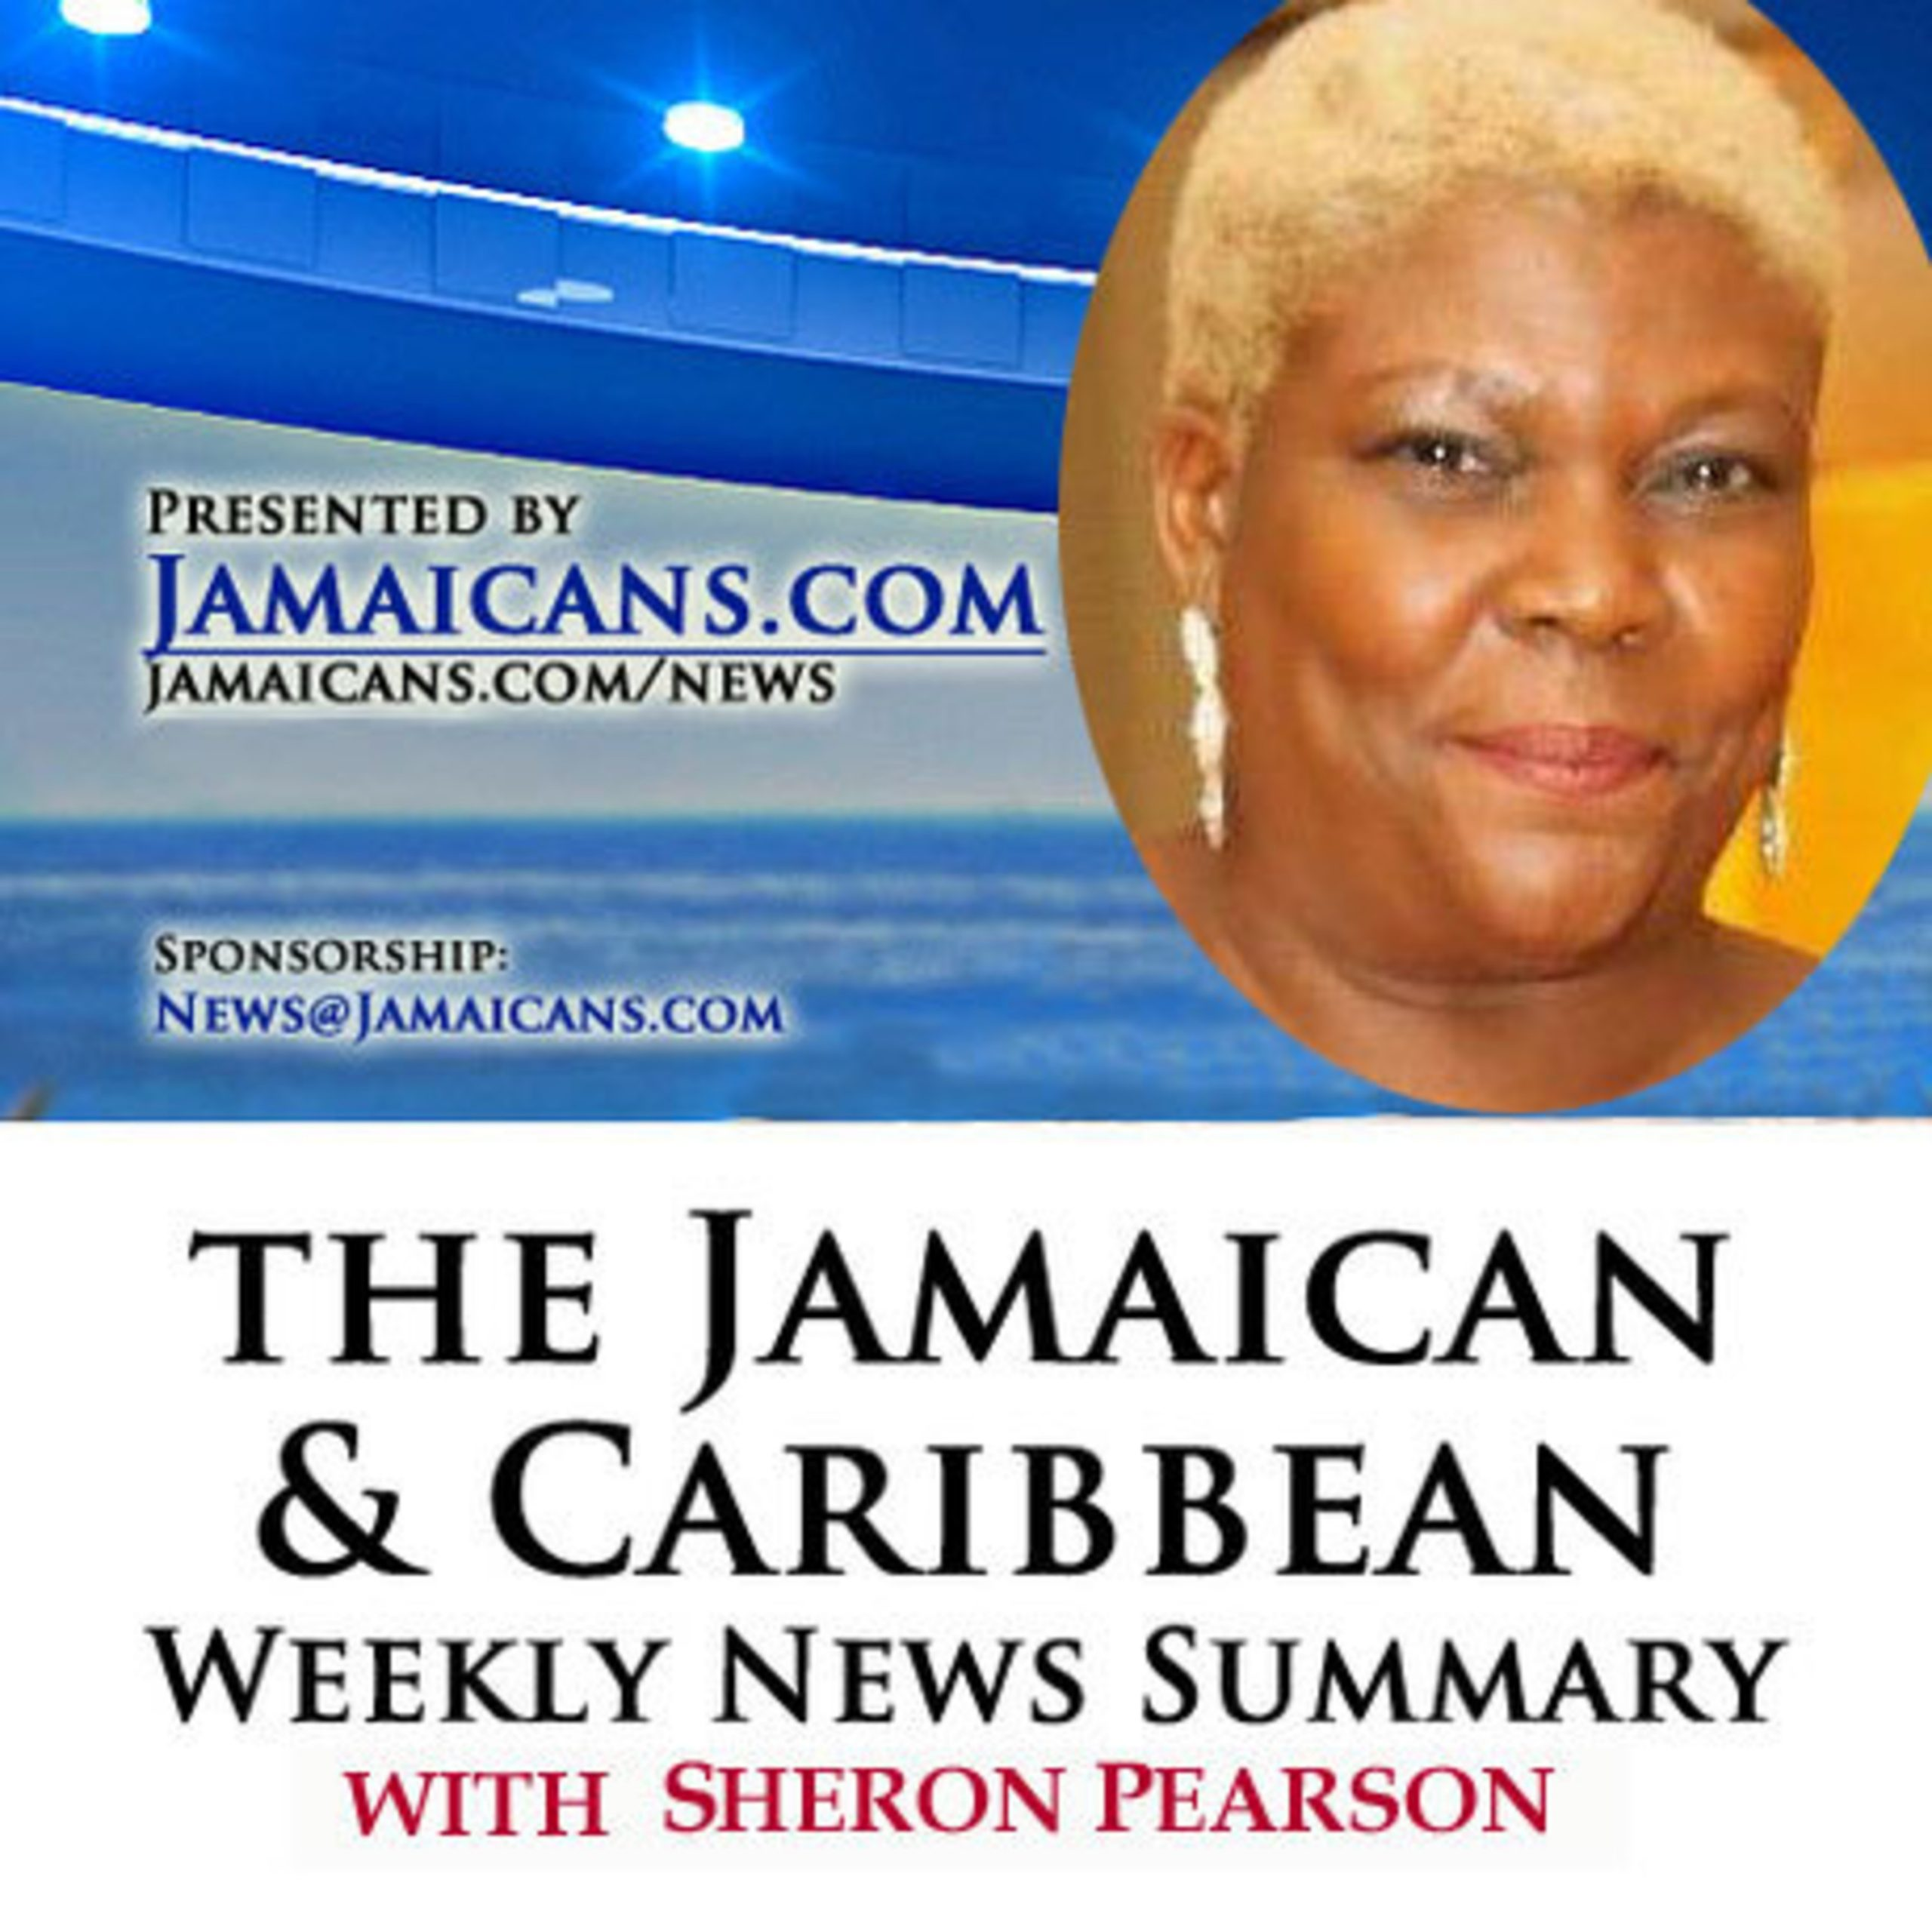 Listen to the Podcast of The Jamaica & Caribbean Weekly News Summary for the week ending March 27, 2020